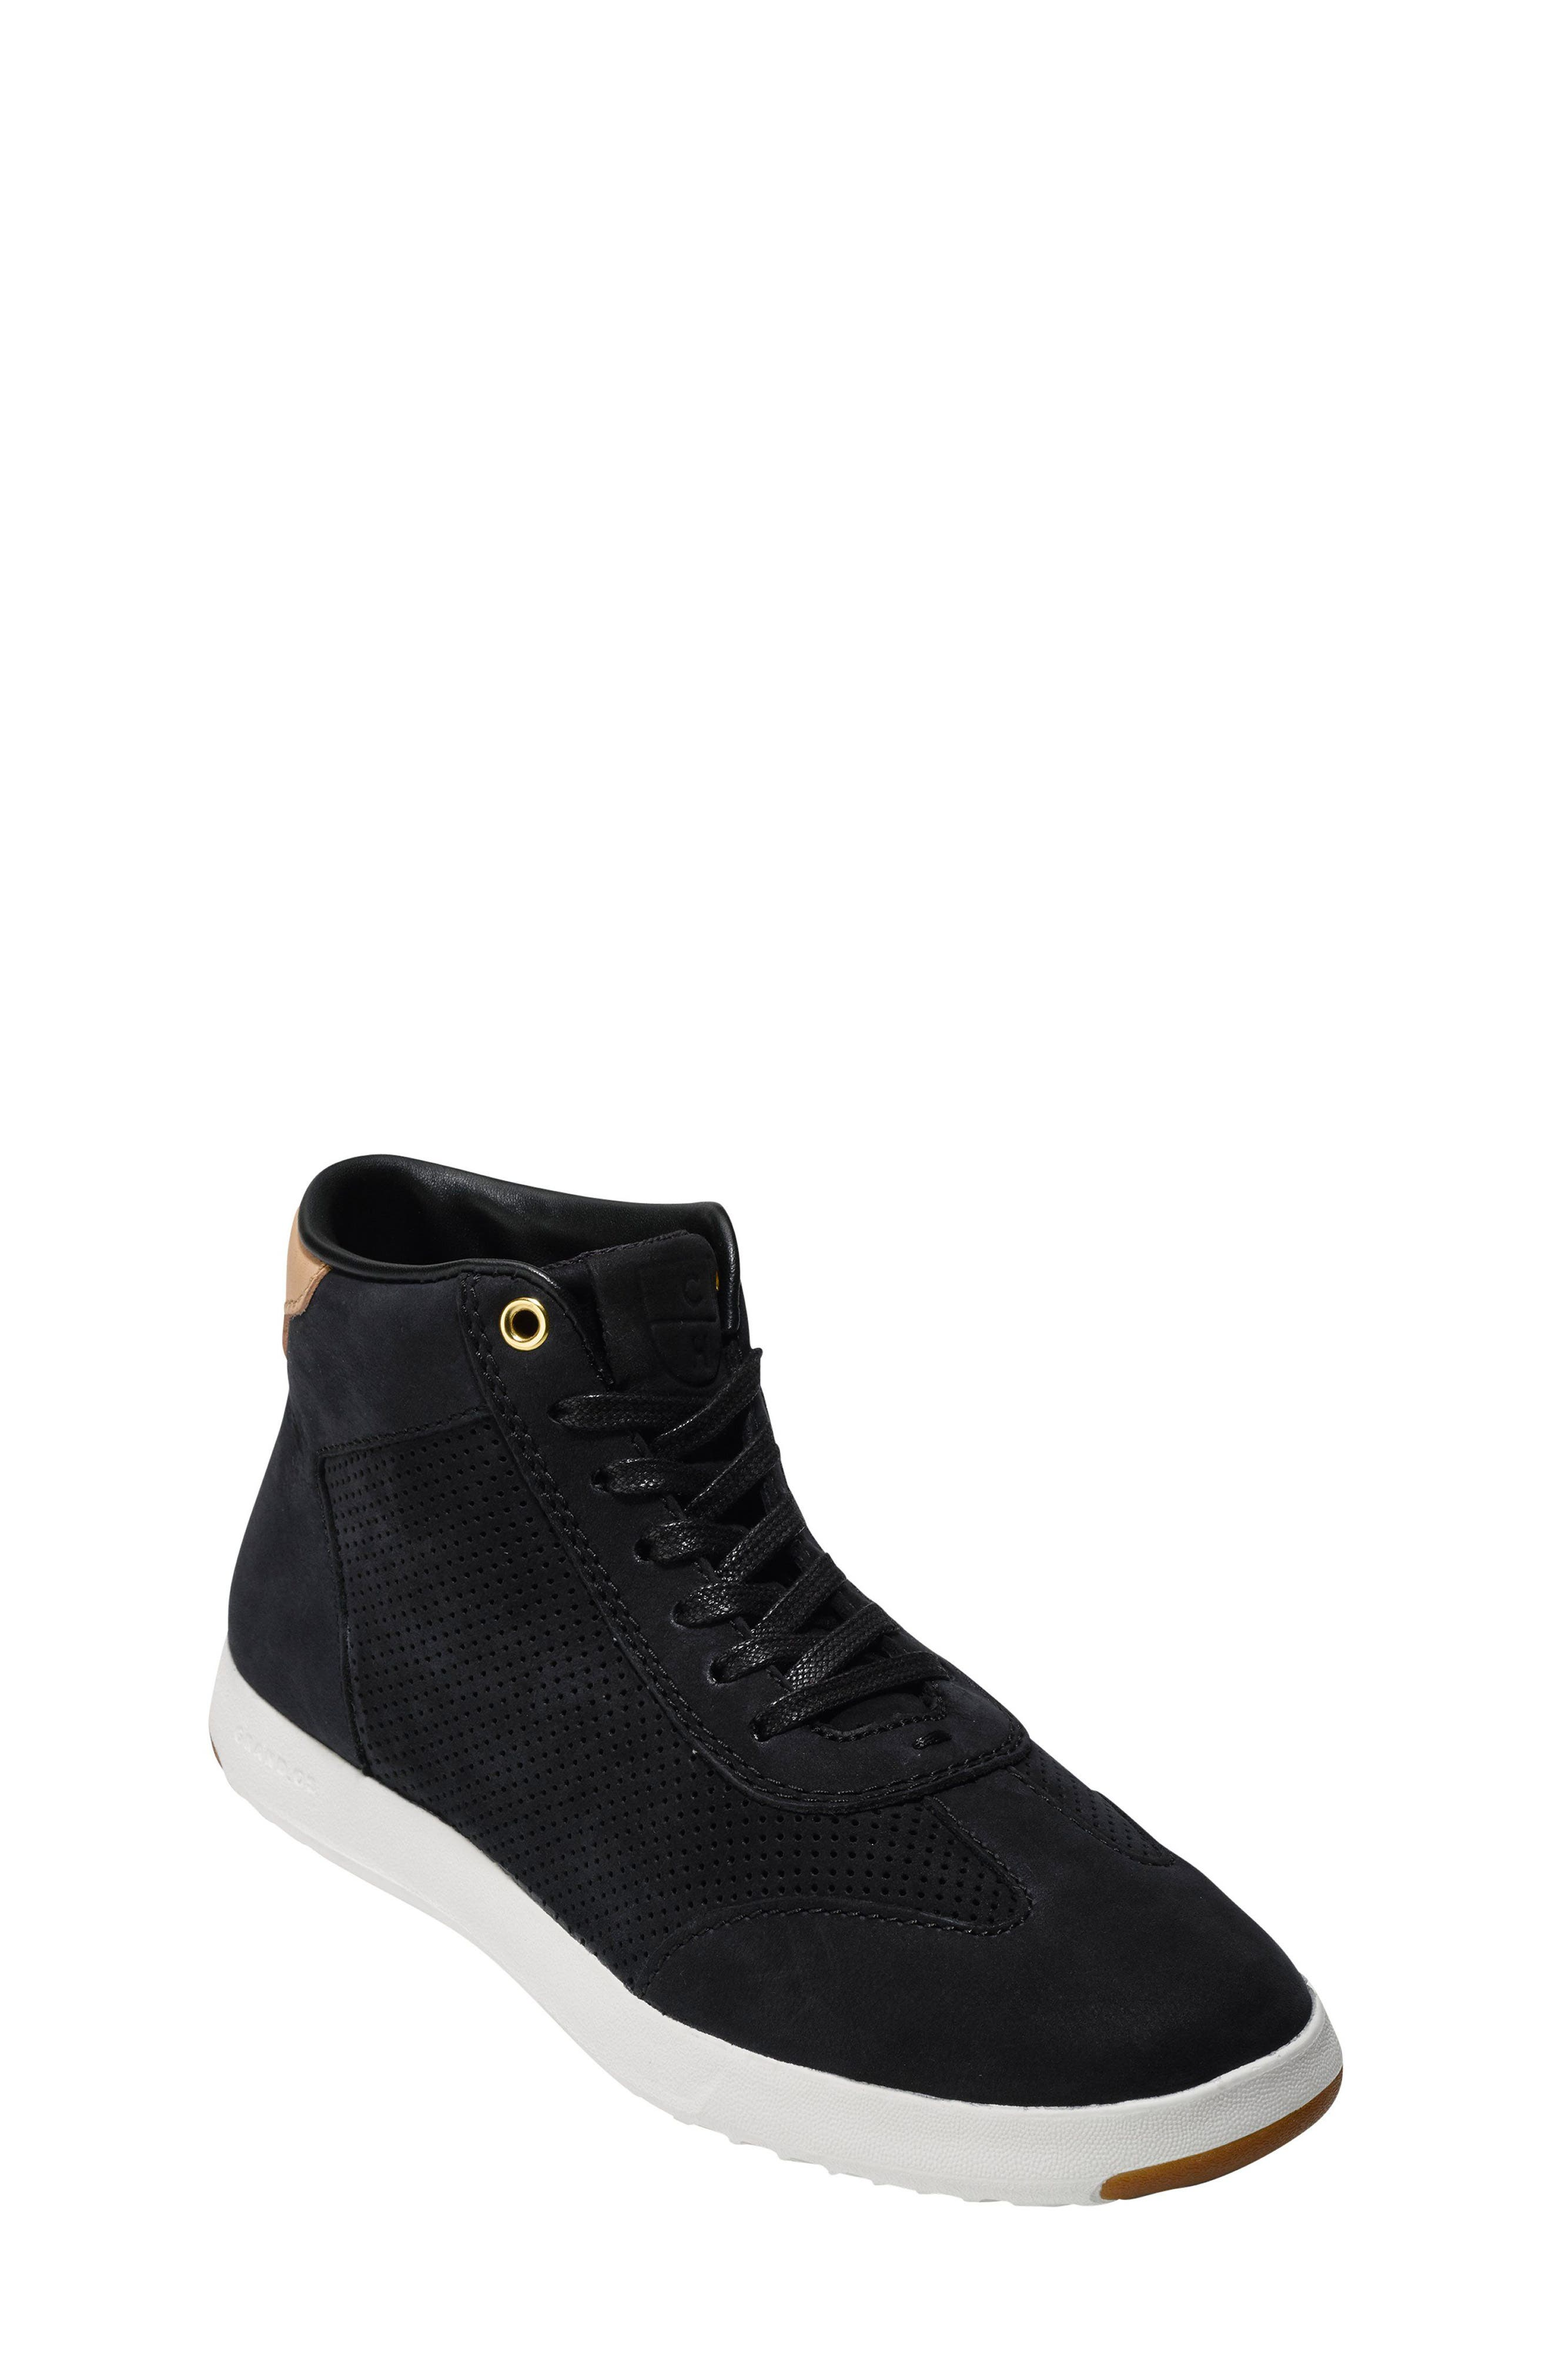 GrandPro High Top Sneaker,                             Main thumbnail 1, color,                             Black Nubuck Leather